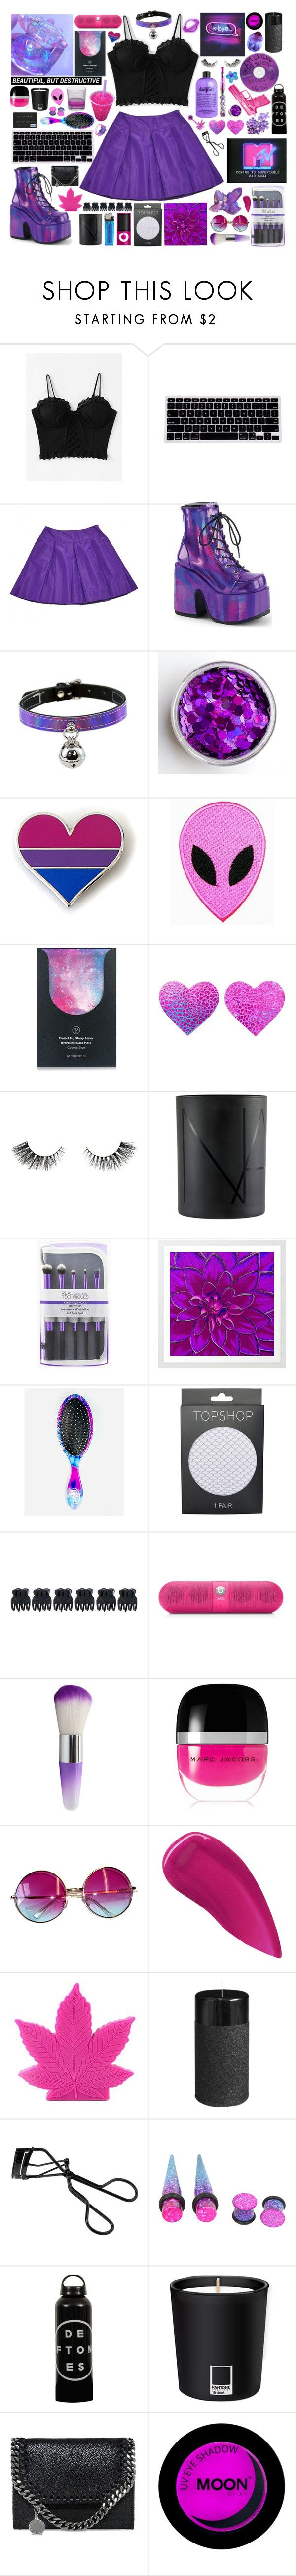 """""""Succubus"""" by wisteriablossom ❤ liked on Polyvore featuring Prada, Demonia, Petite Amie, Artémes, NARS Cosmetics, The Wet Brush, Topshop, Accessorize, Beats by Dr. Dre and philosophy"""